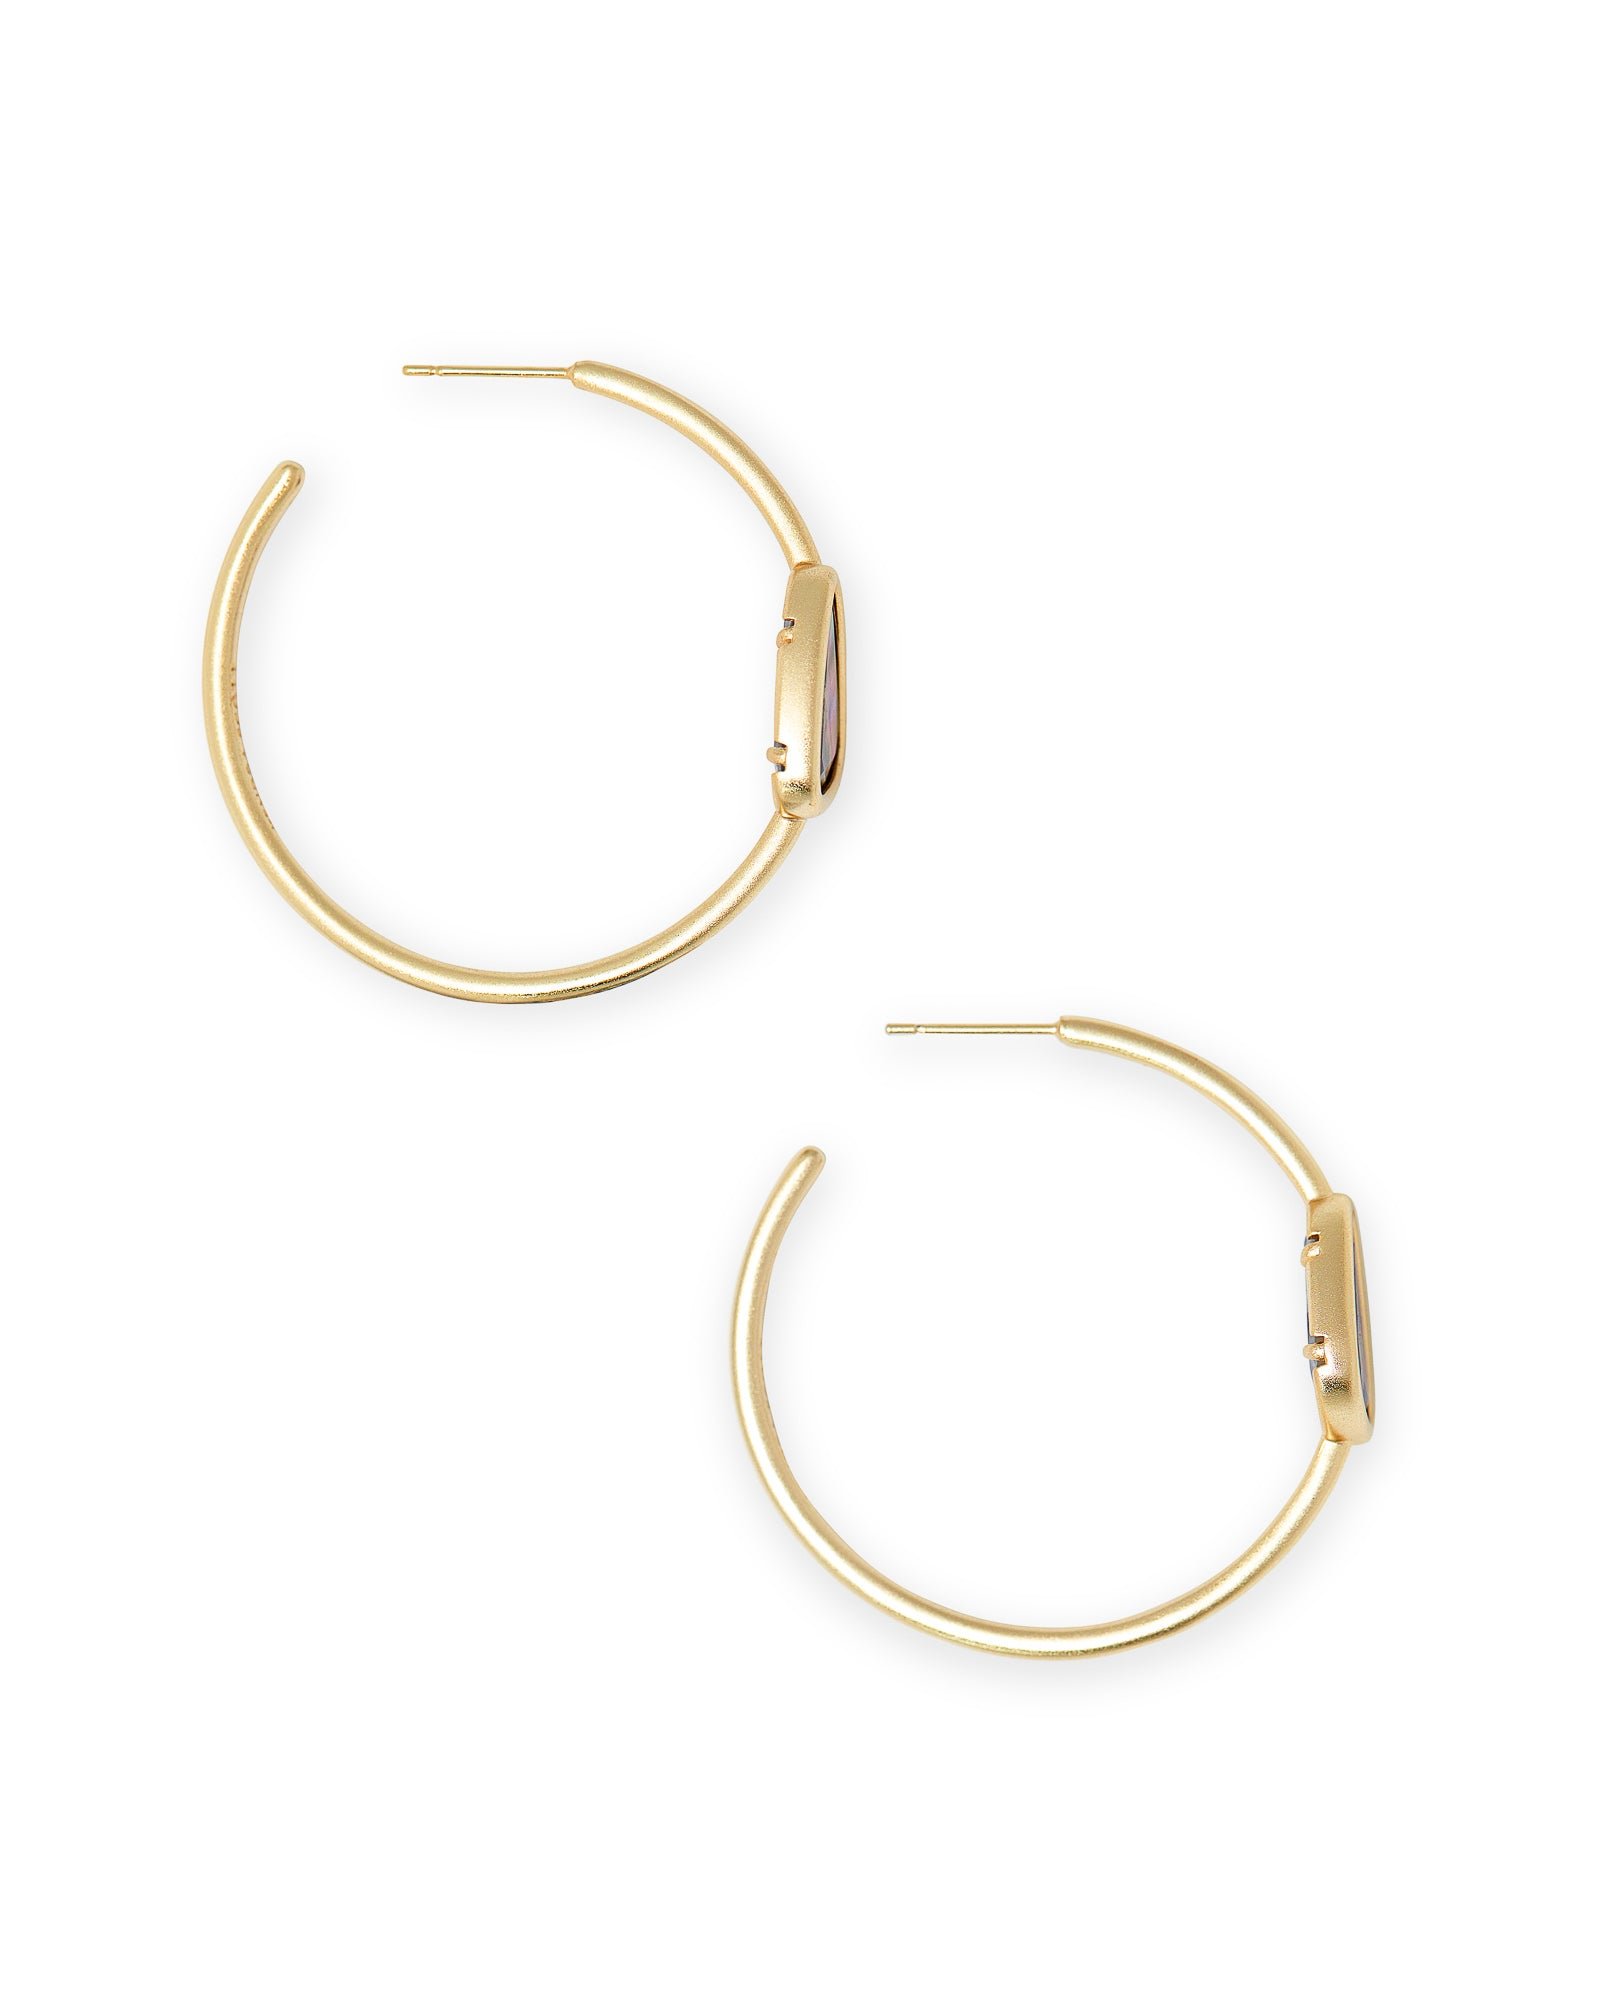 Margot Gold Hoop Earrings In Lilac Abalone